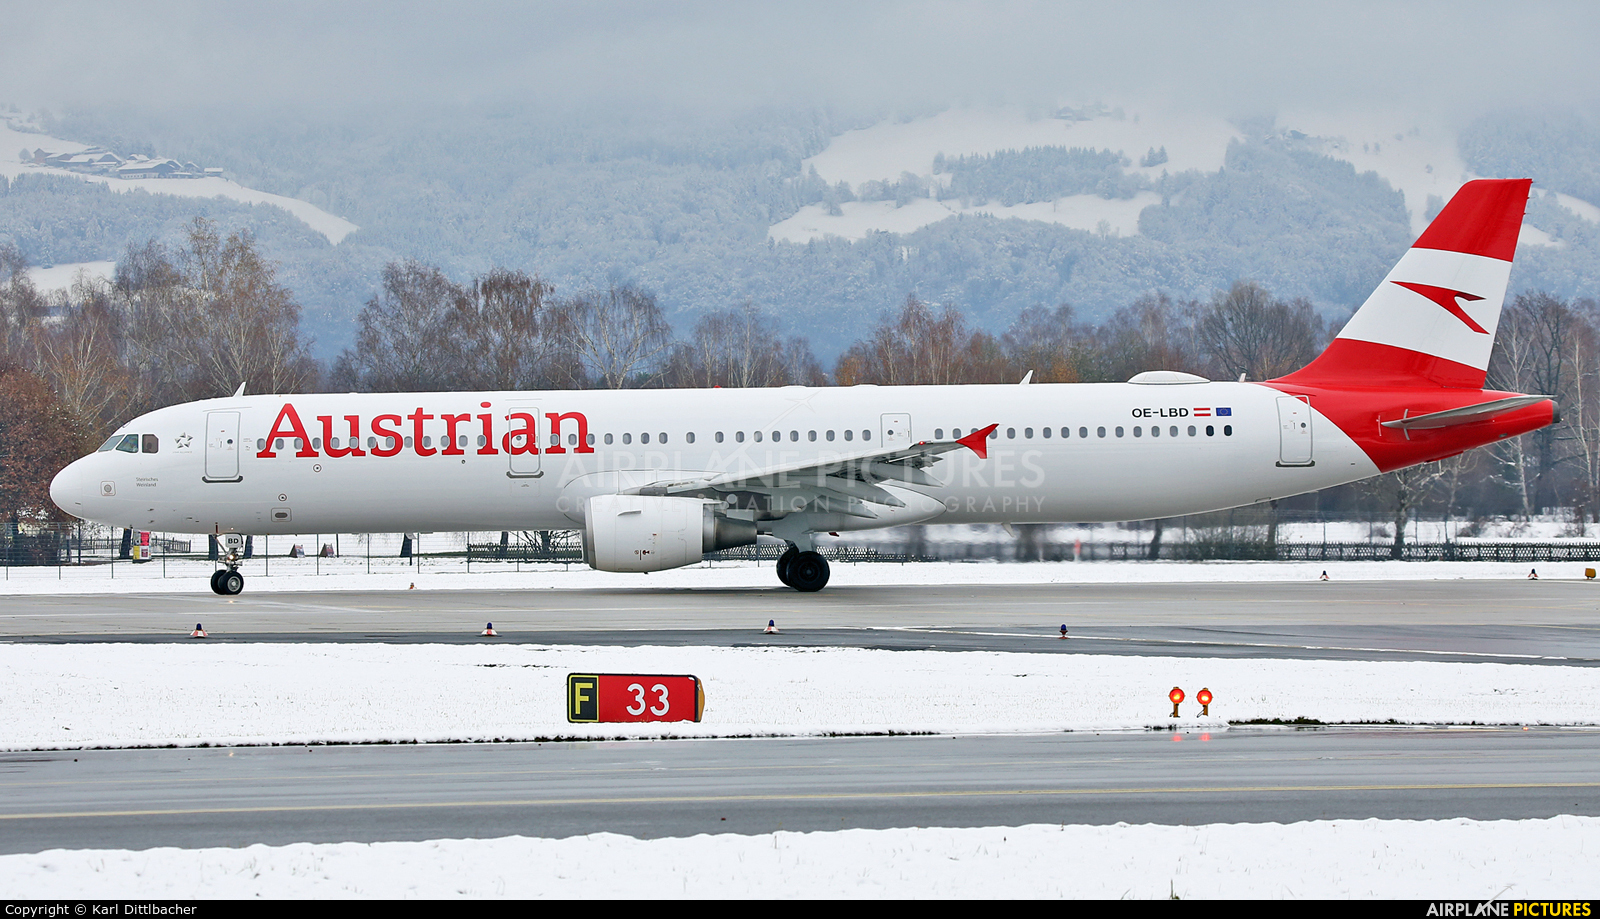 Austrian Airlines/Arrows/Tyrolean OE-LBD aircraft at Salzburg